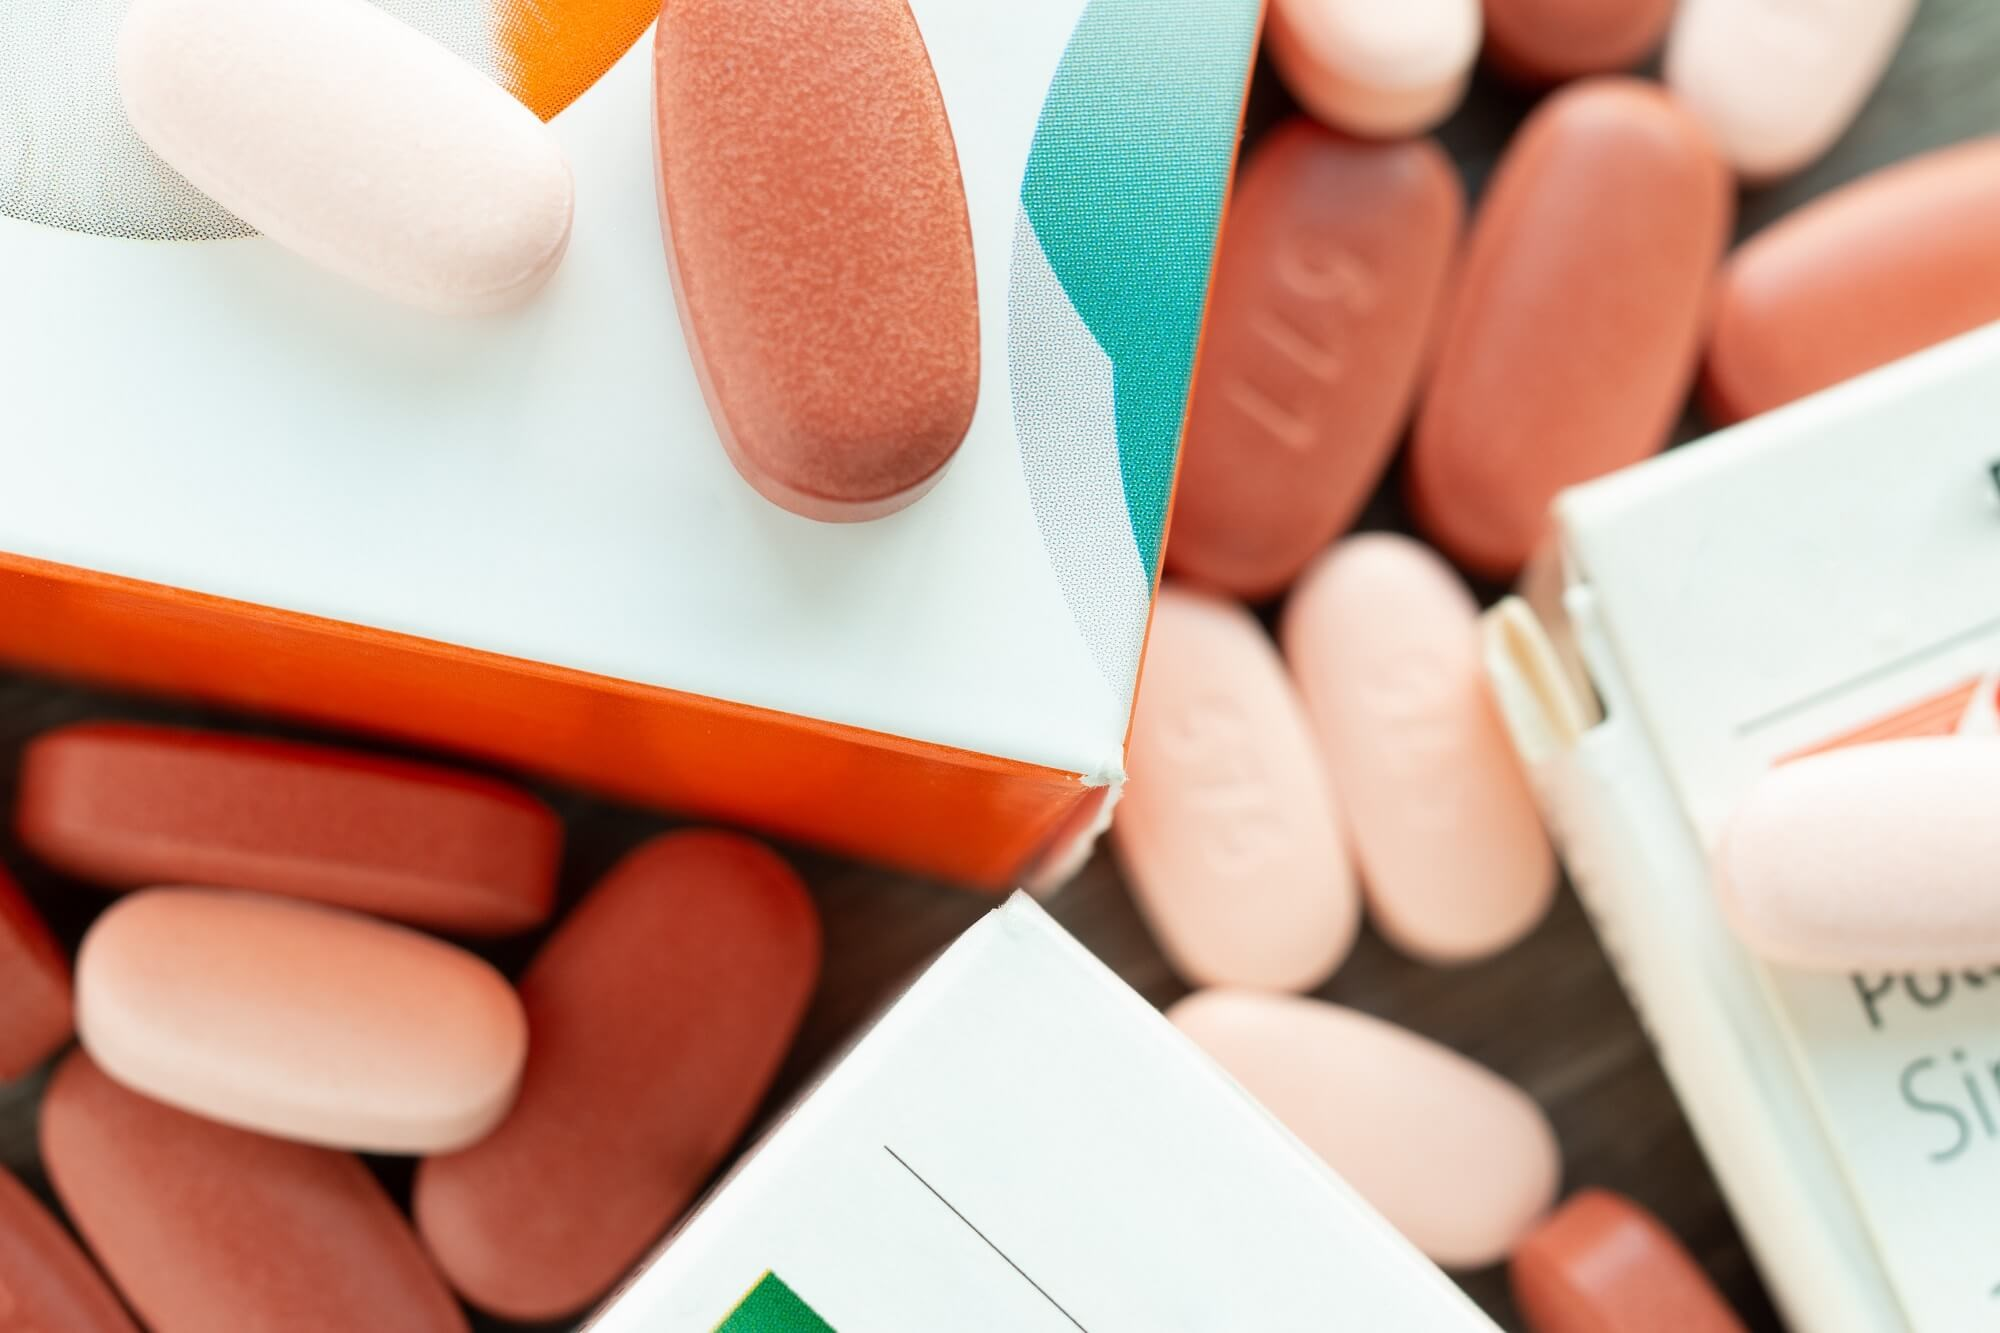 The biggest costs were from three rheumatoid arthritis drugs -- Humira, Remicade, and Enbrel.